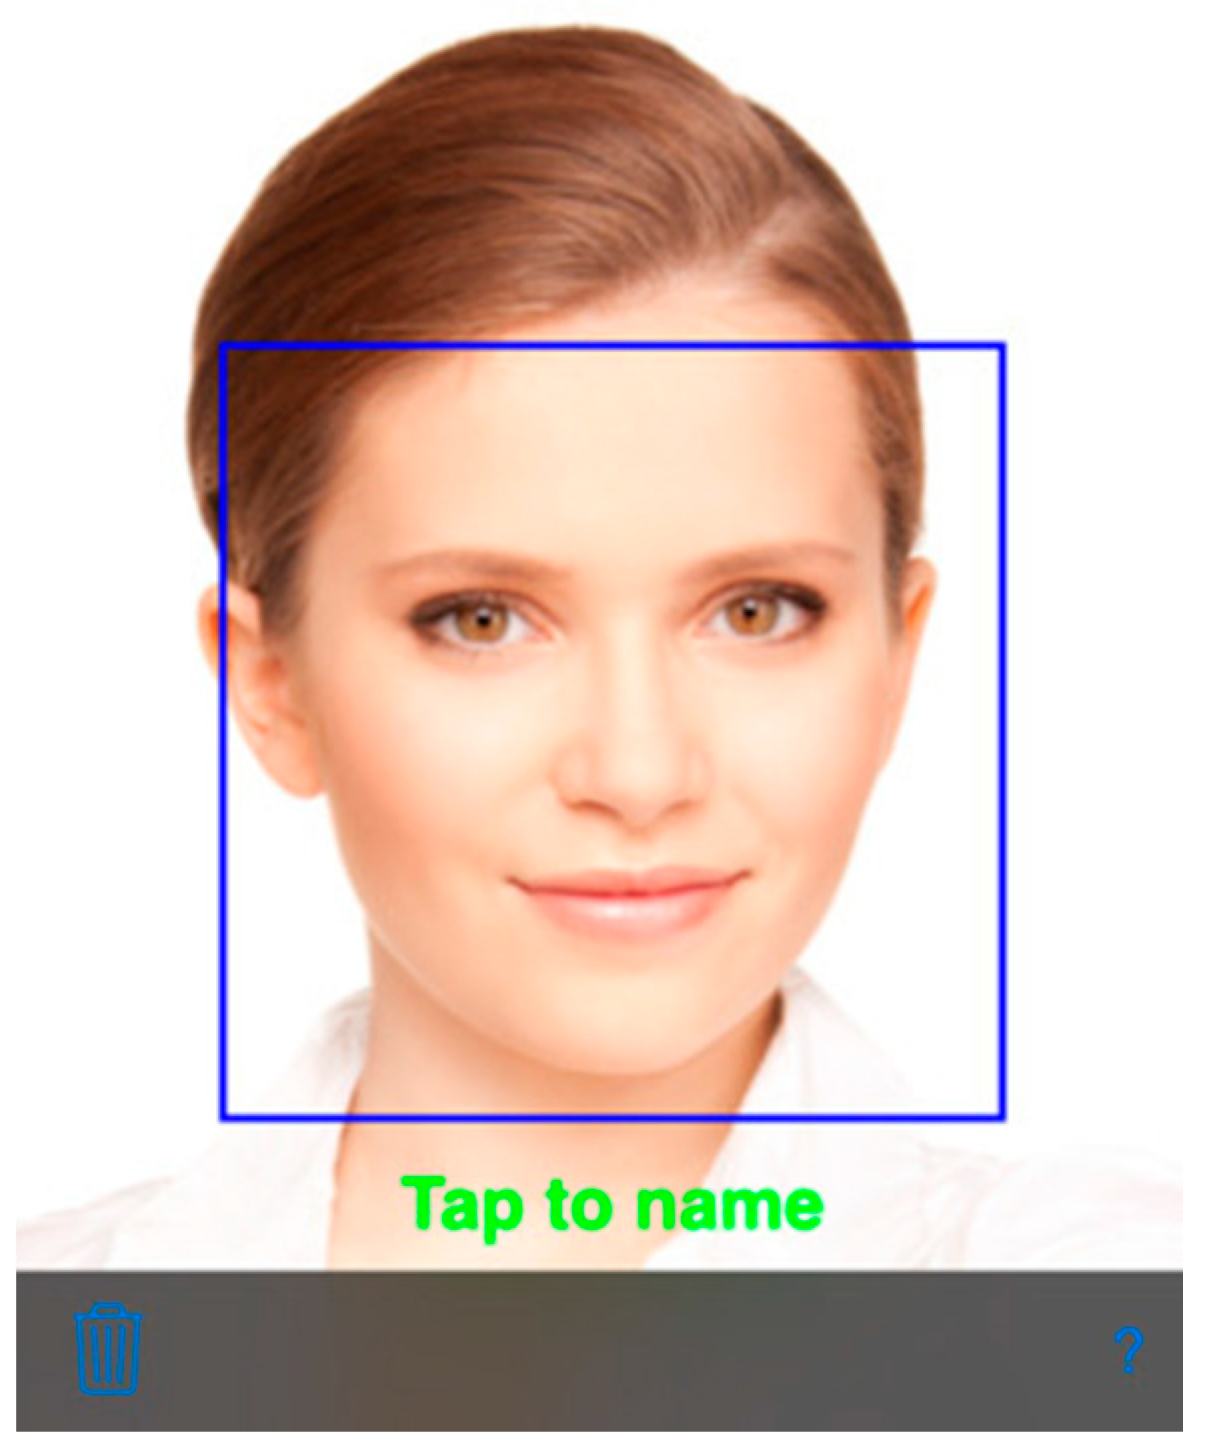 Computers | Free Full-Text | A Review of Facial Biometrics Security